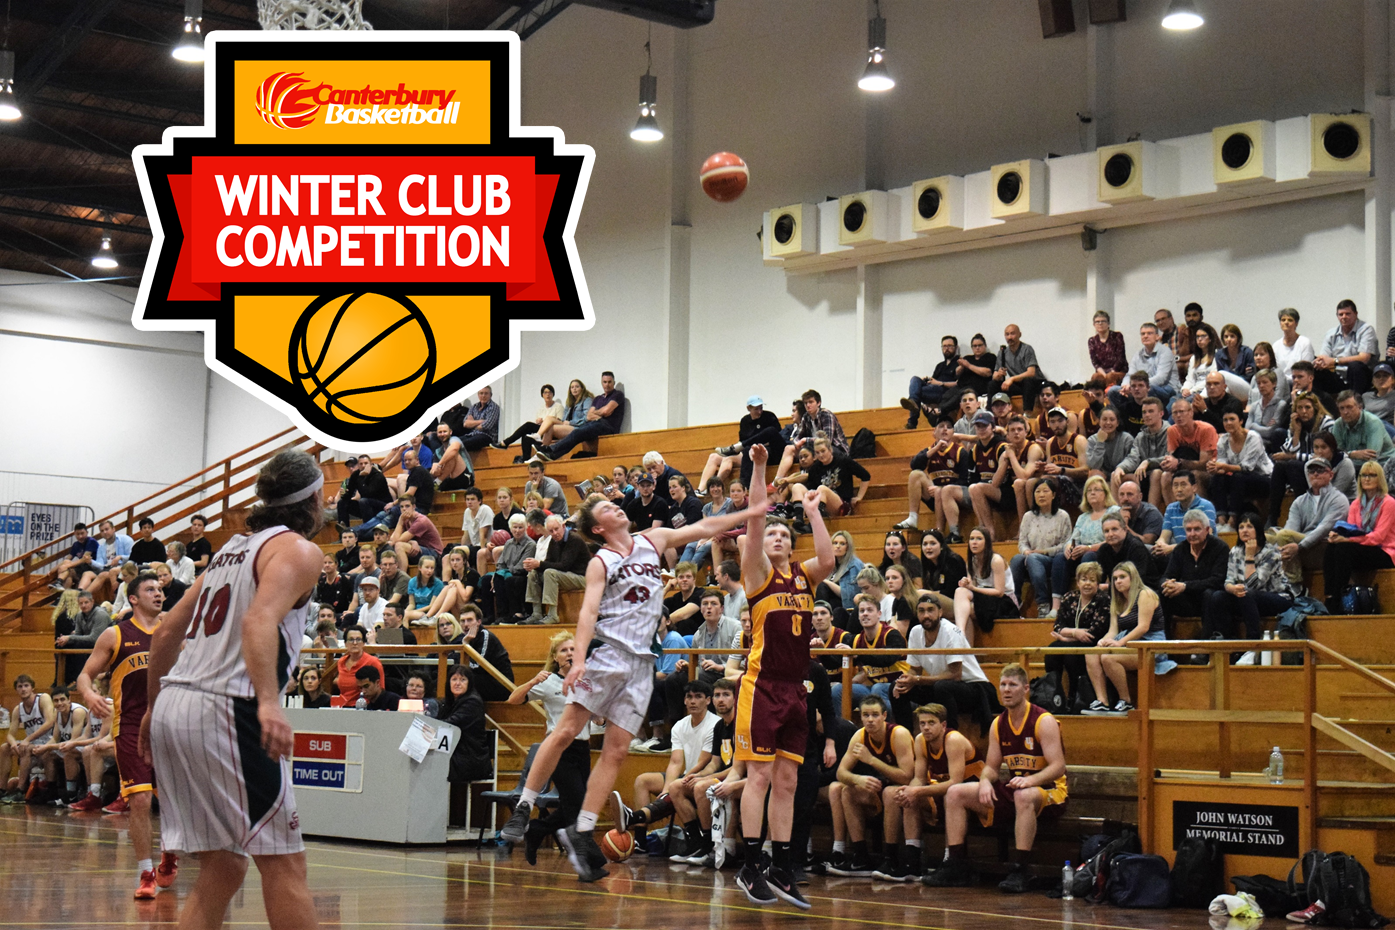 2019 Winter Club Entry Update - Canterbury